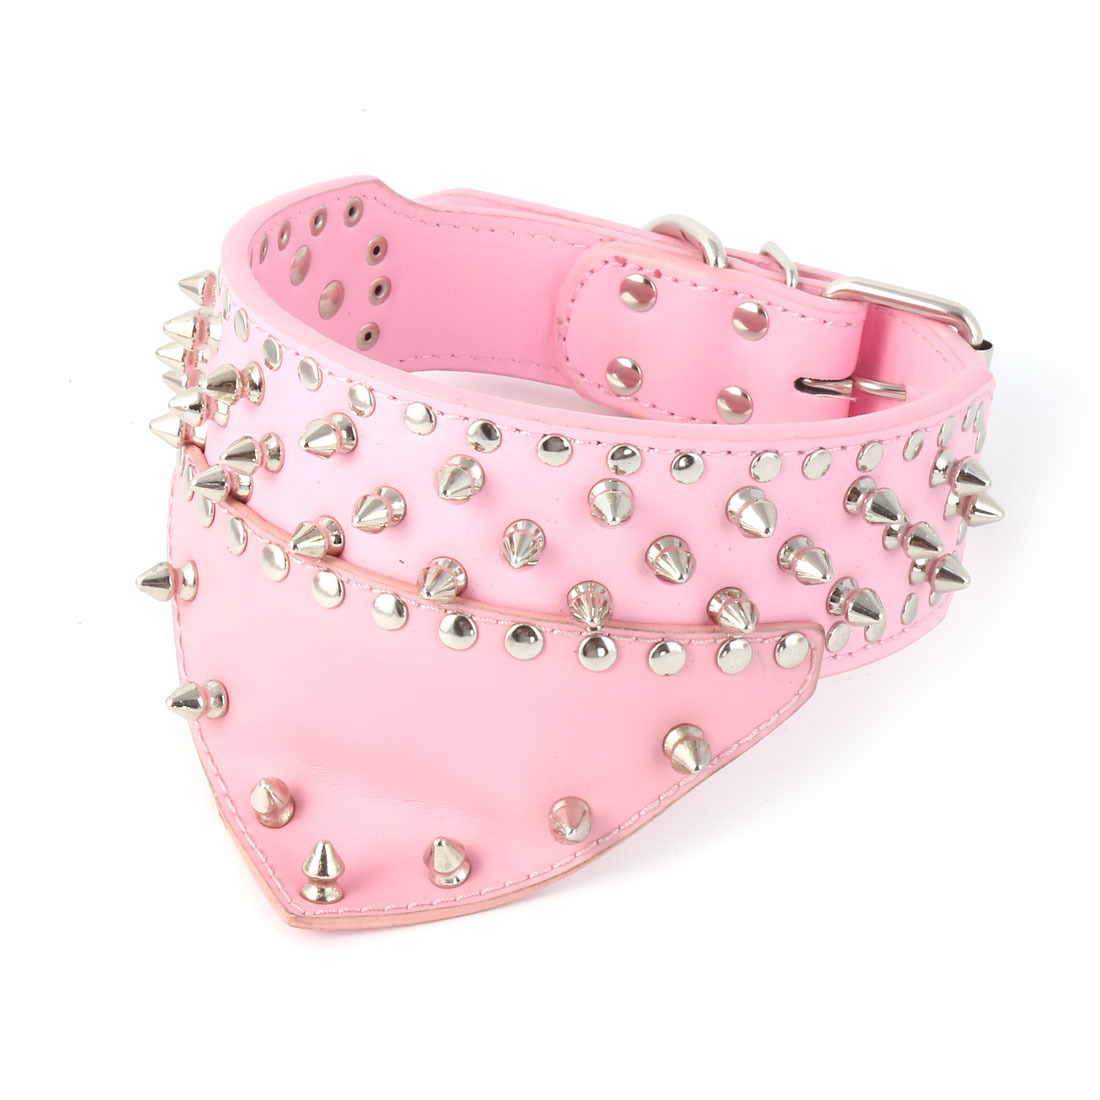 Pet Dog Faux Leather Spiked Rivet Studded Triangular Towel Neck Strap Collar